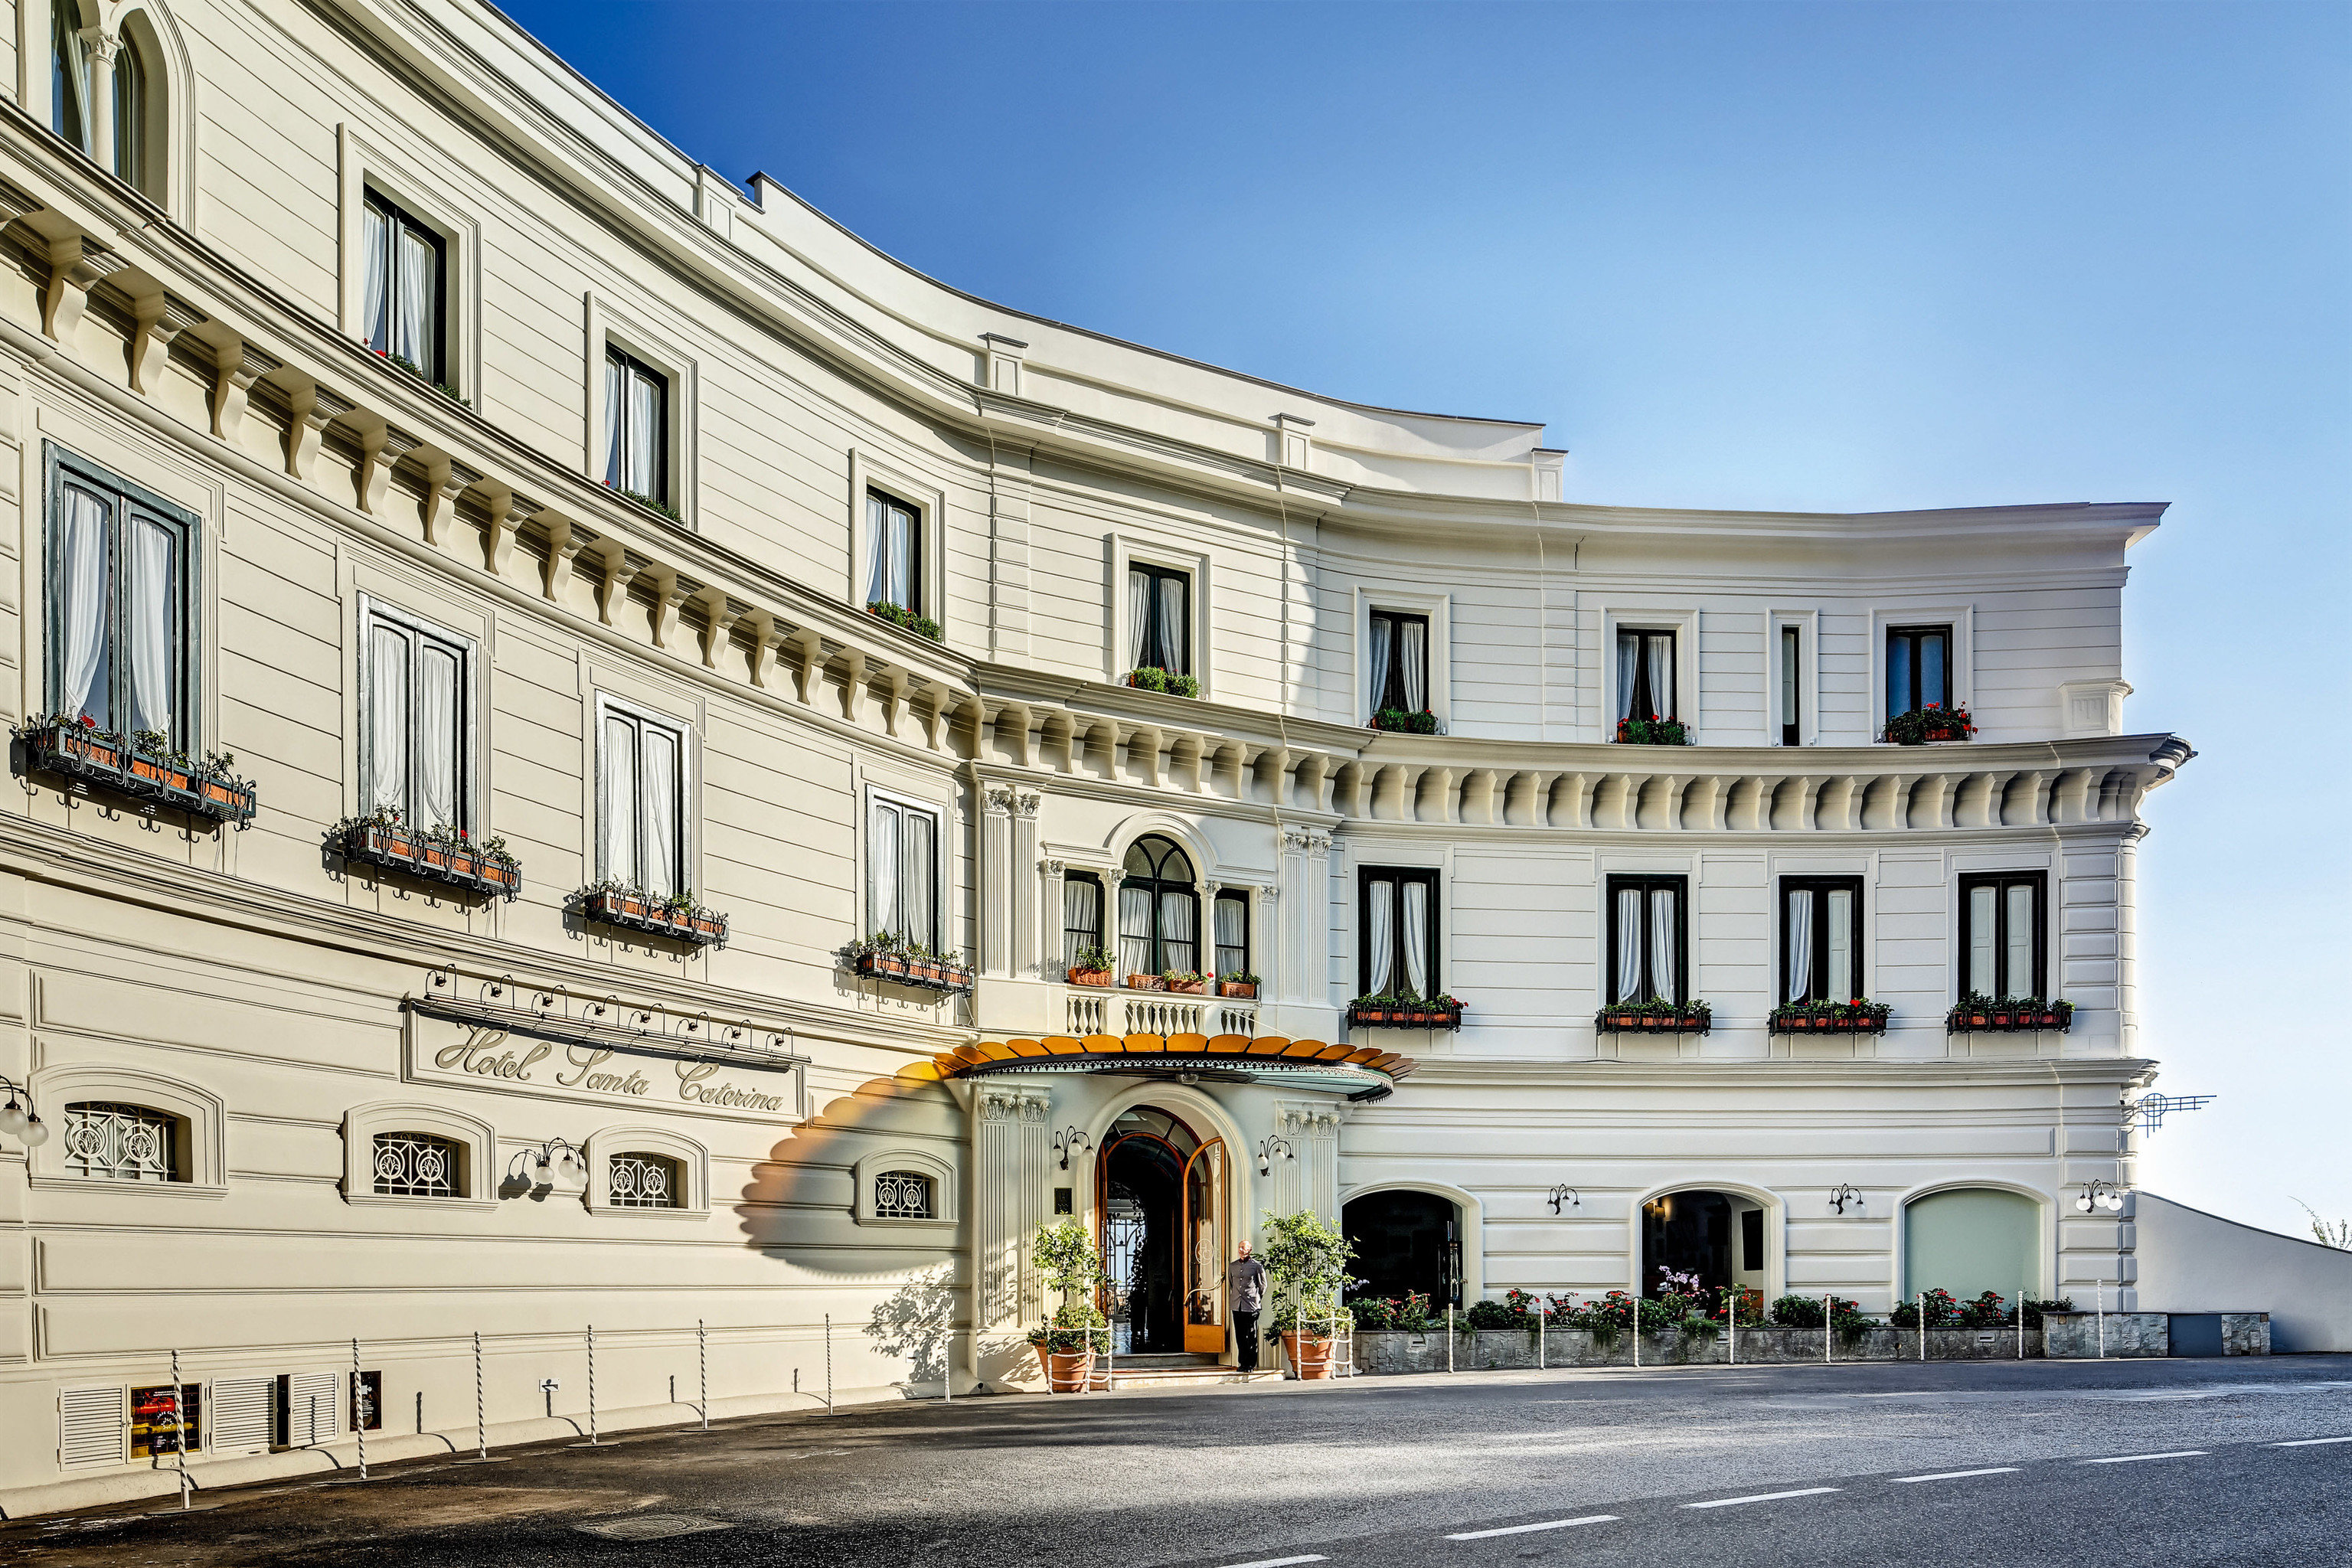 Hotels Romance sky building classical architecture landmark Architecture palace plaza white château town square mansion City government building